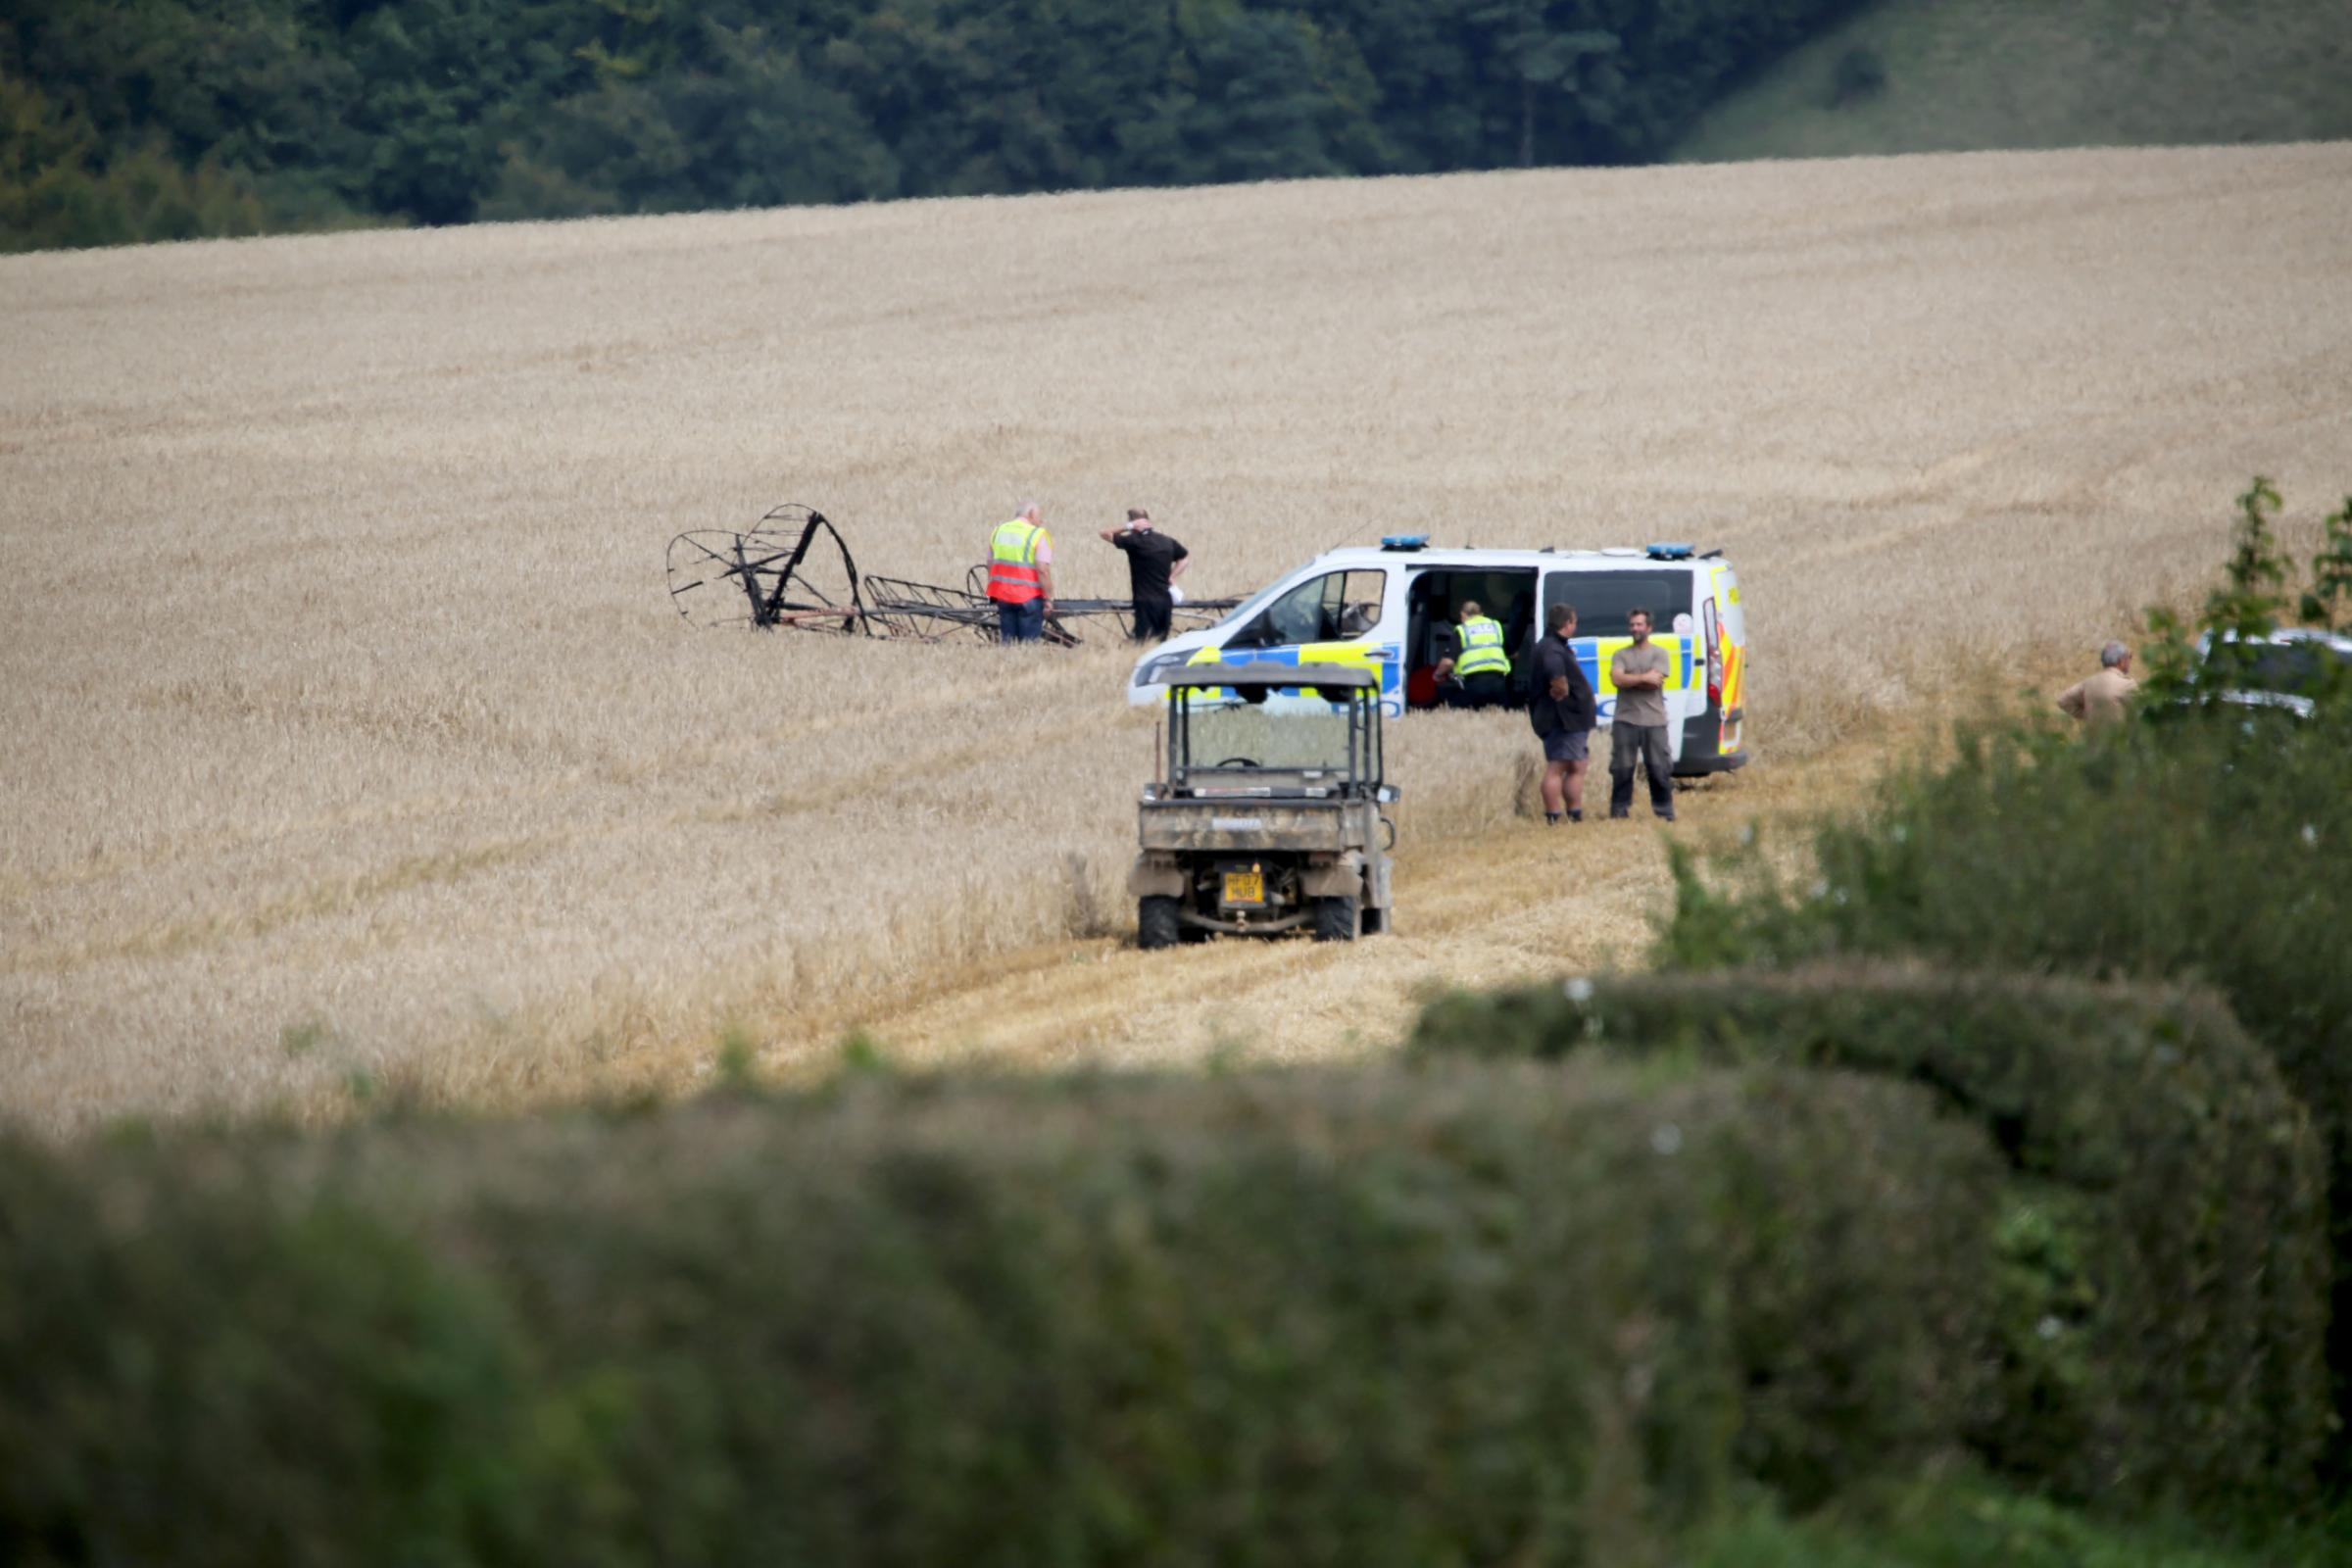 The Tiger Moth crashed near Compton Abbas